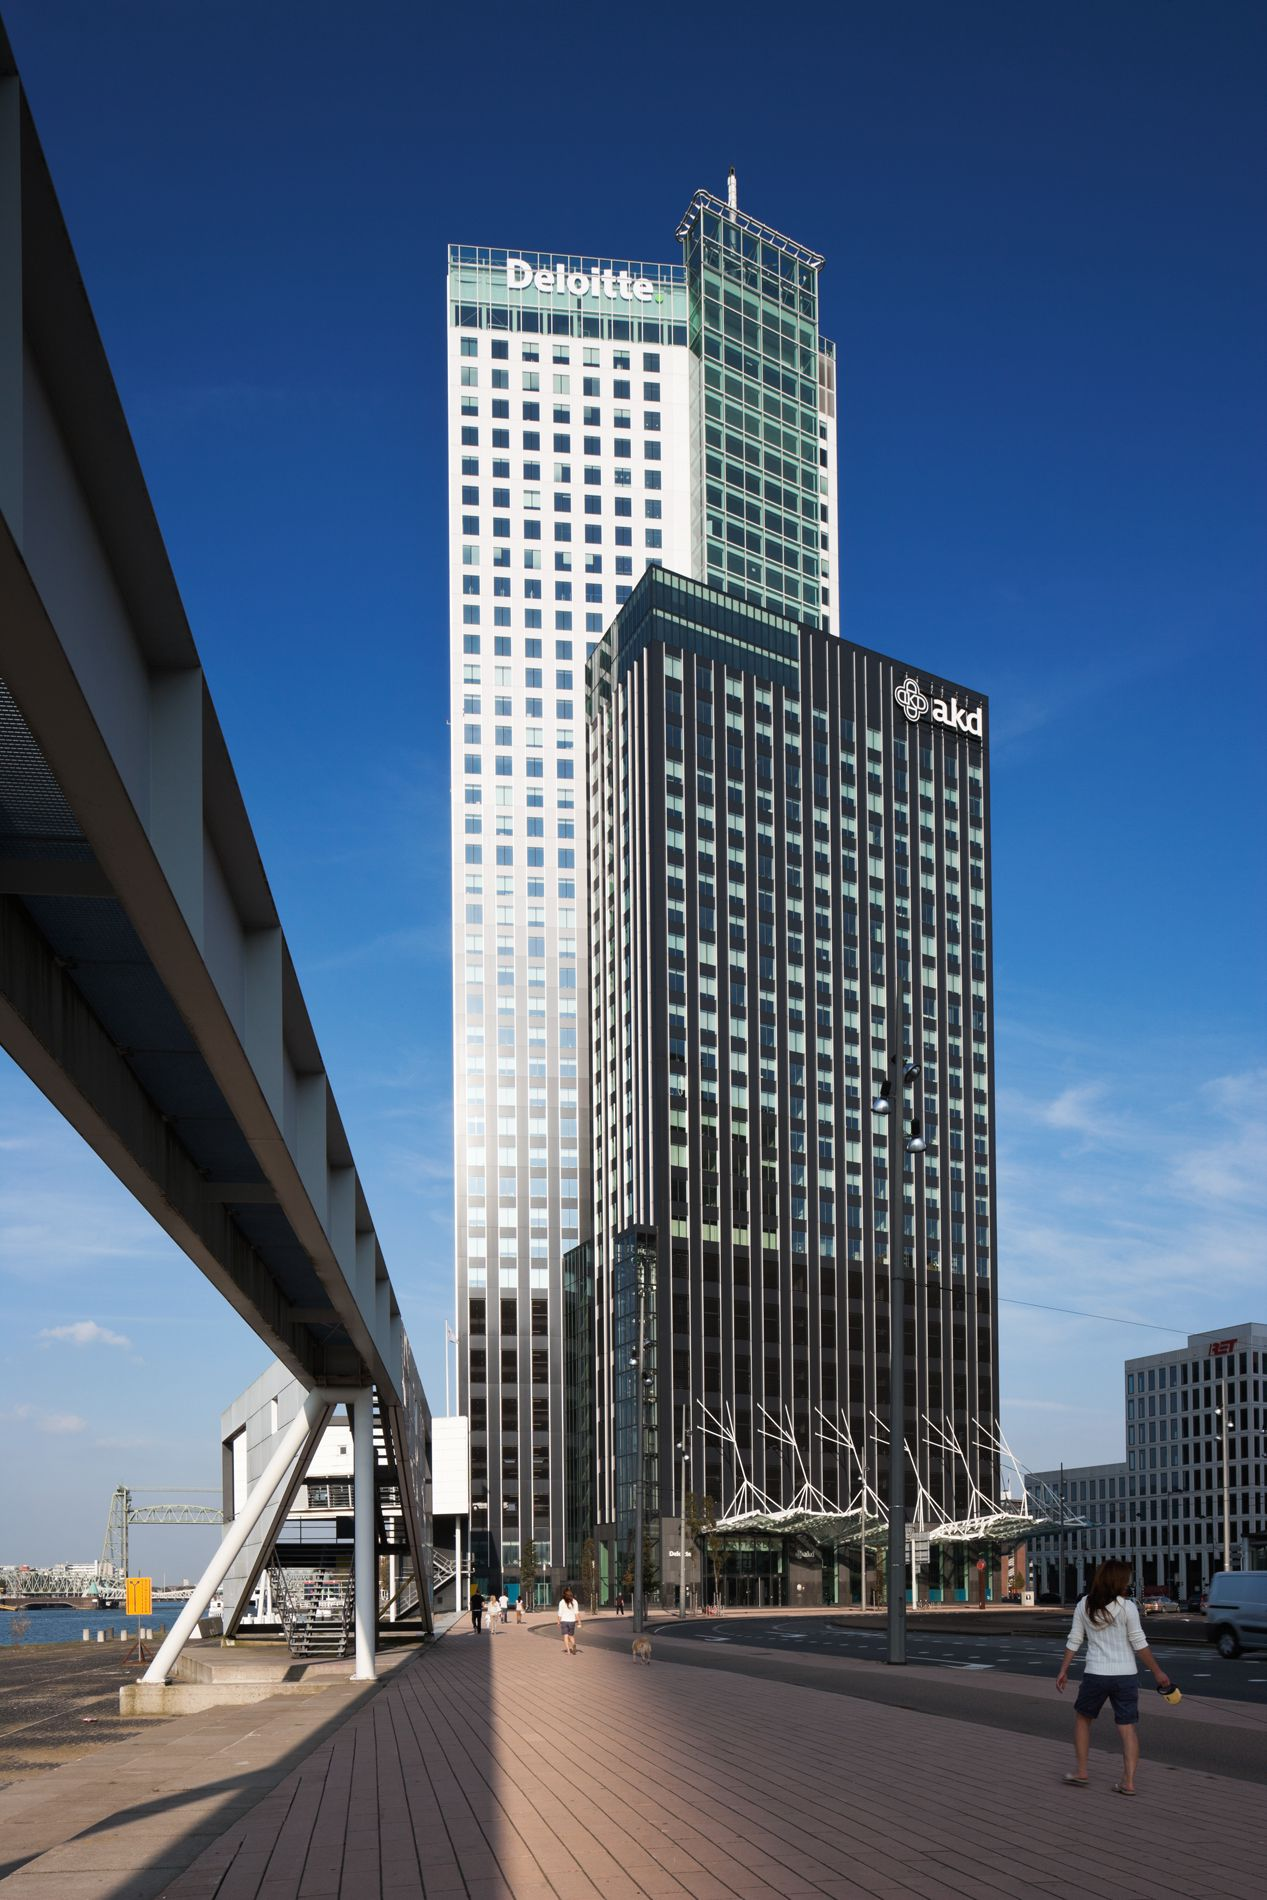 maastoren, maas towers